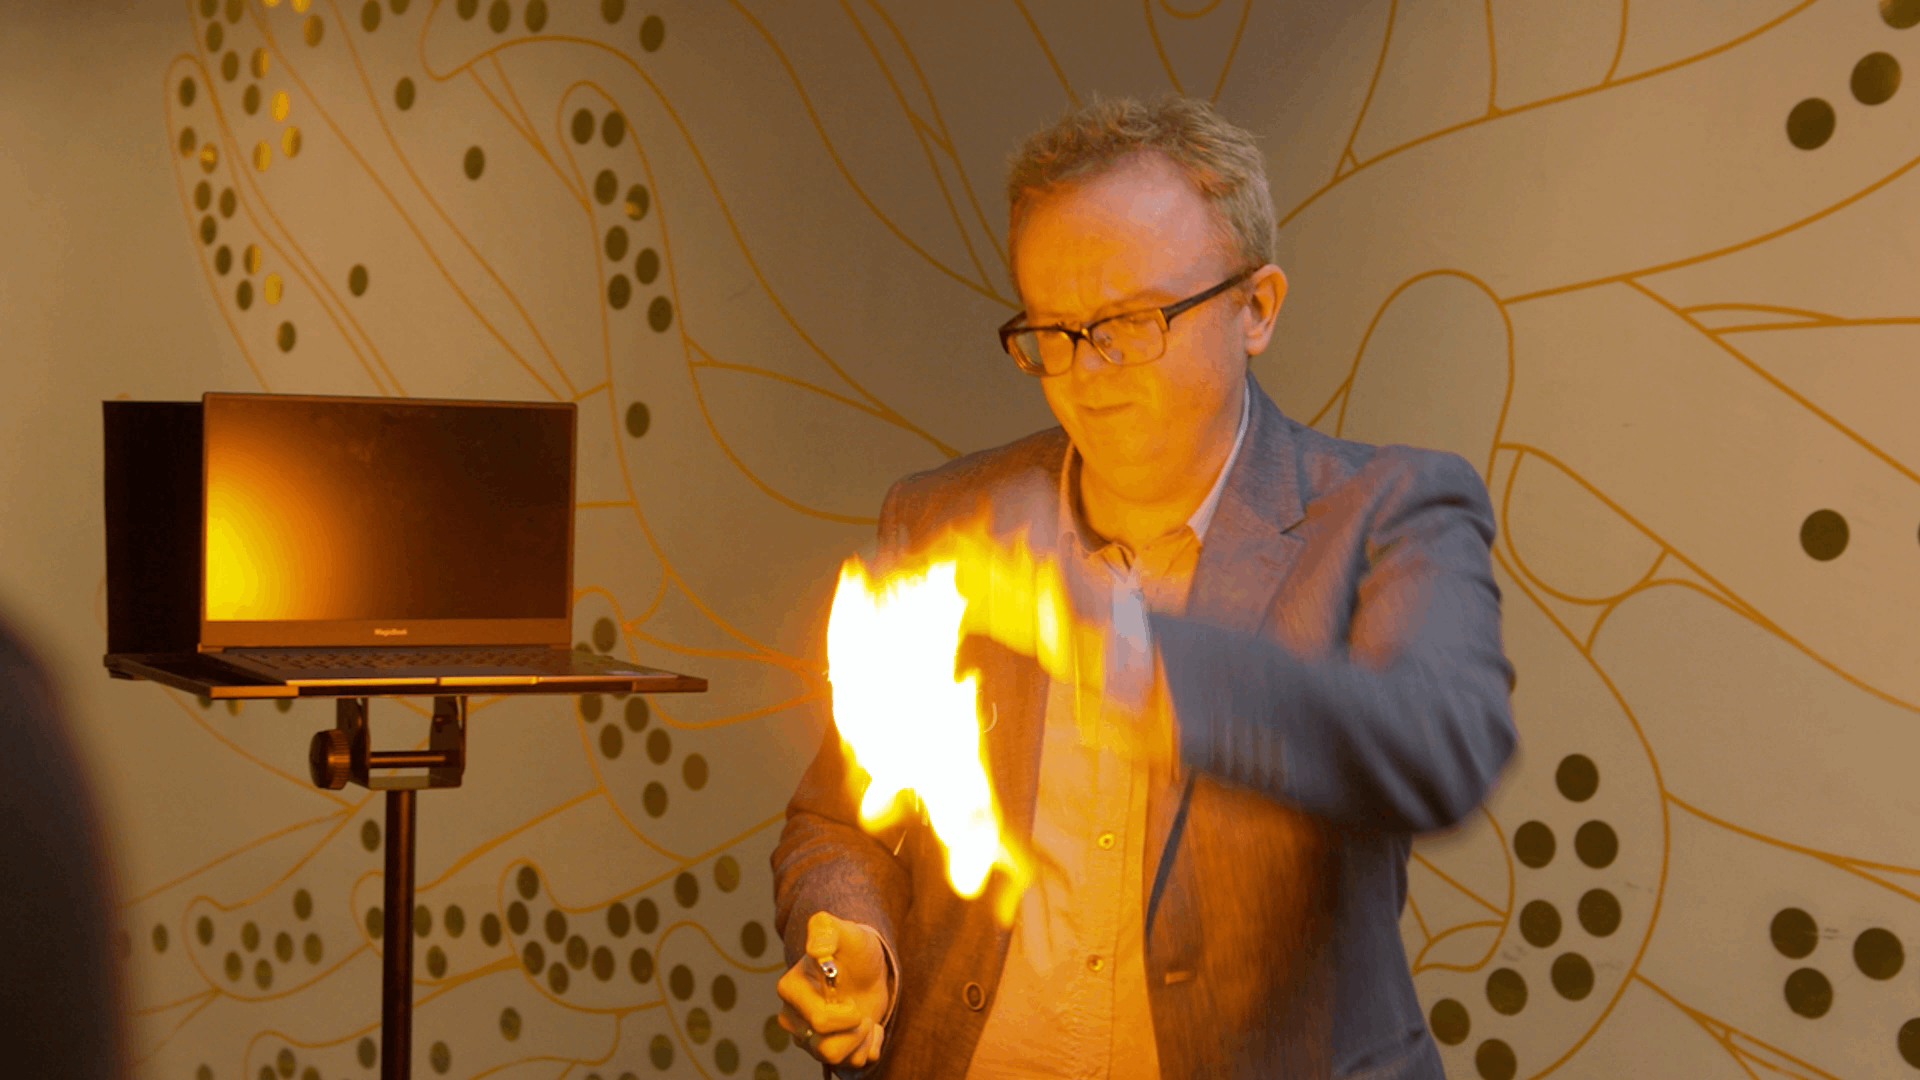 Tech magician with fire